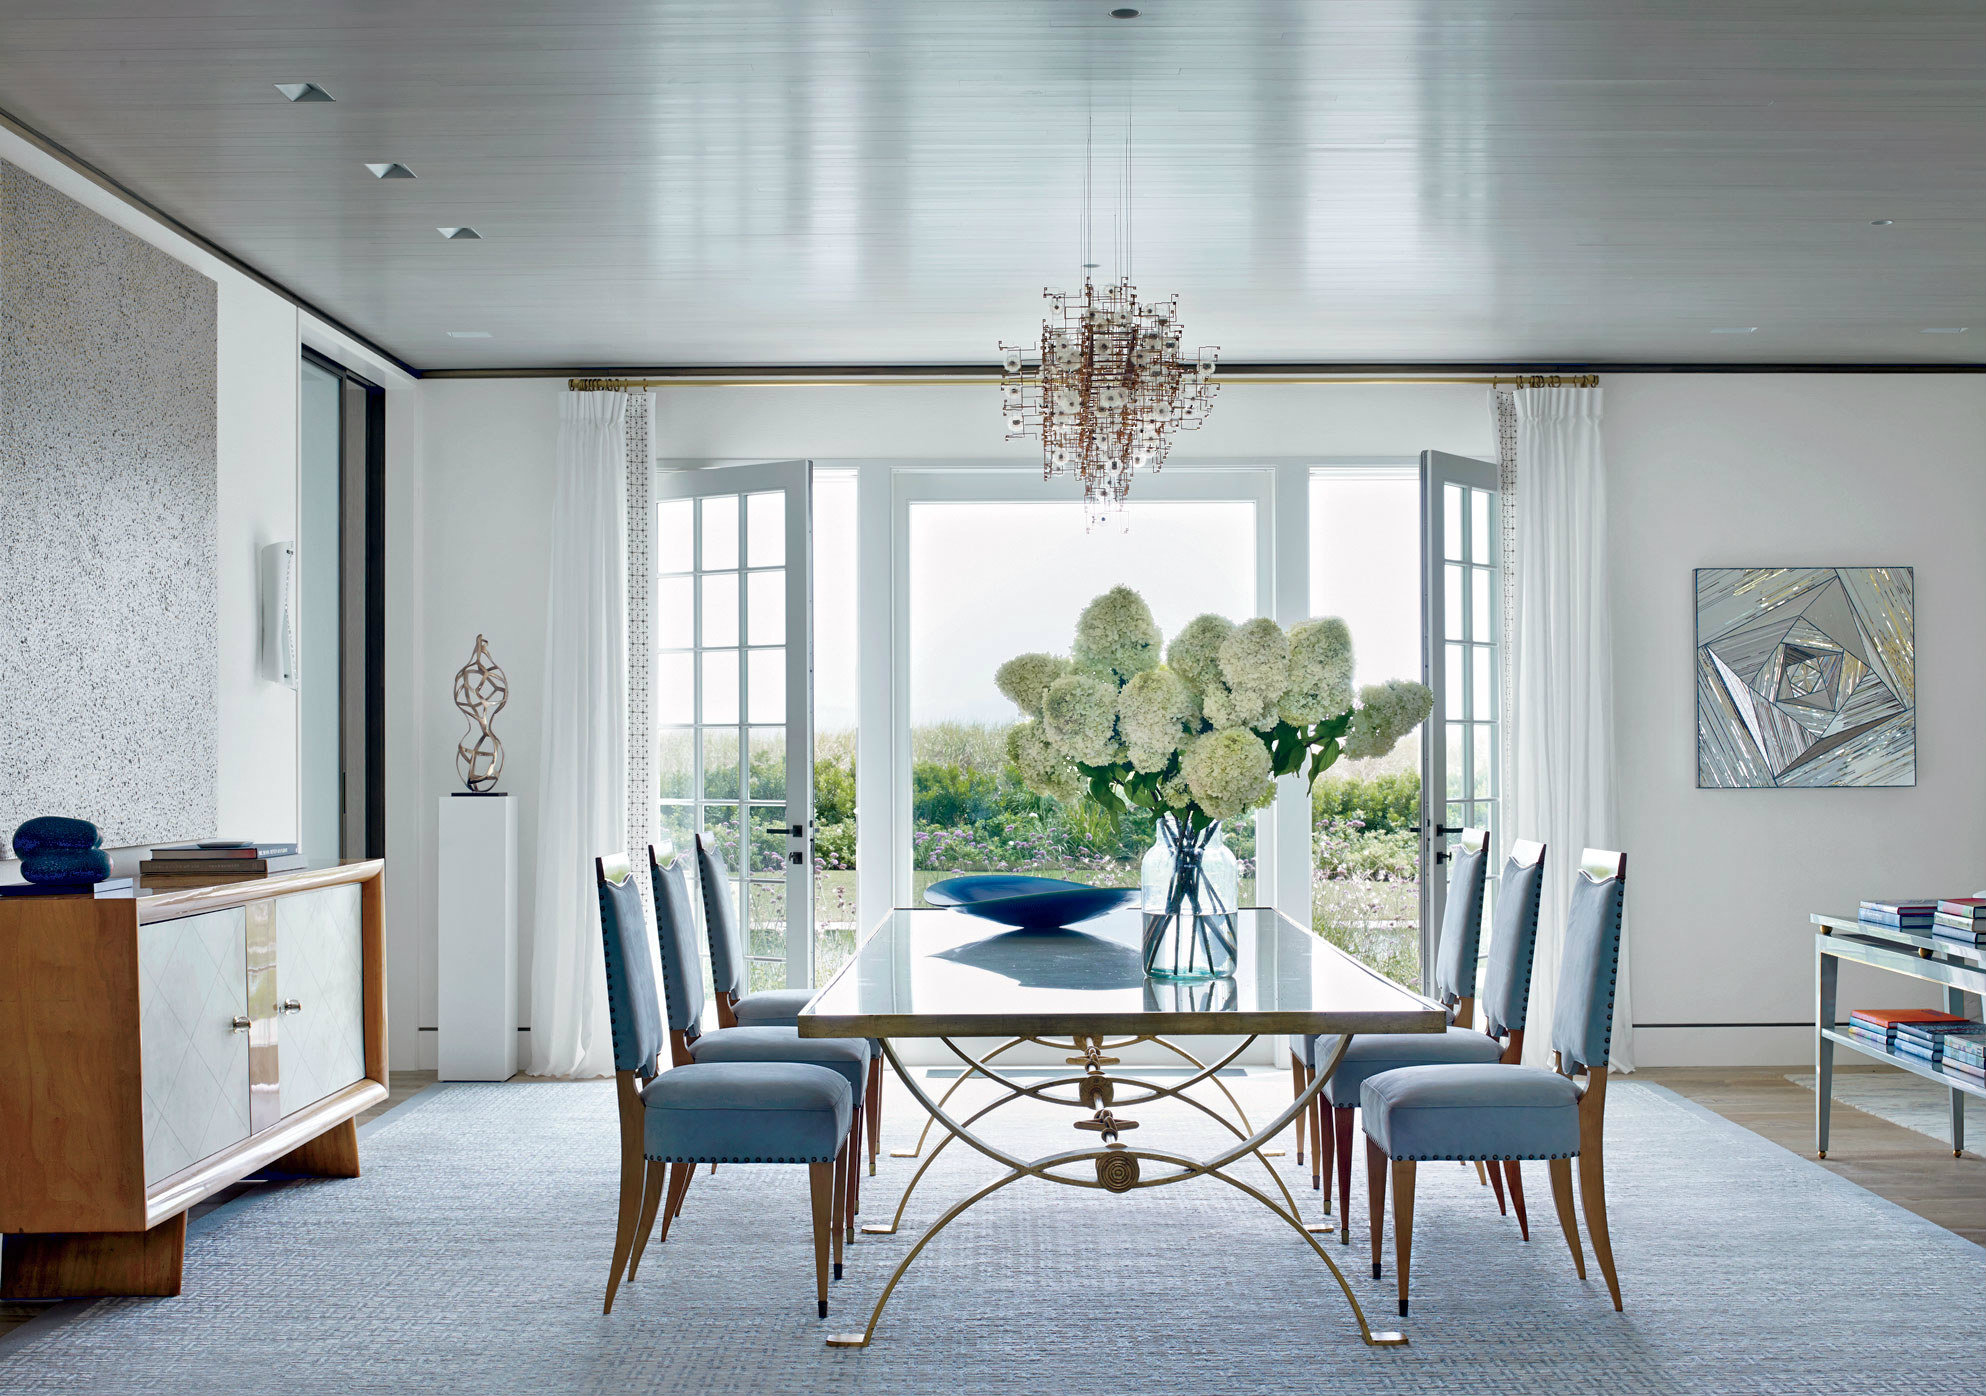 Top 10 dining room trends for 2016 on Trendy Room  id=25736